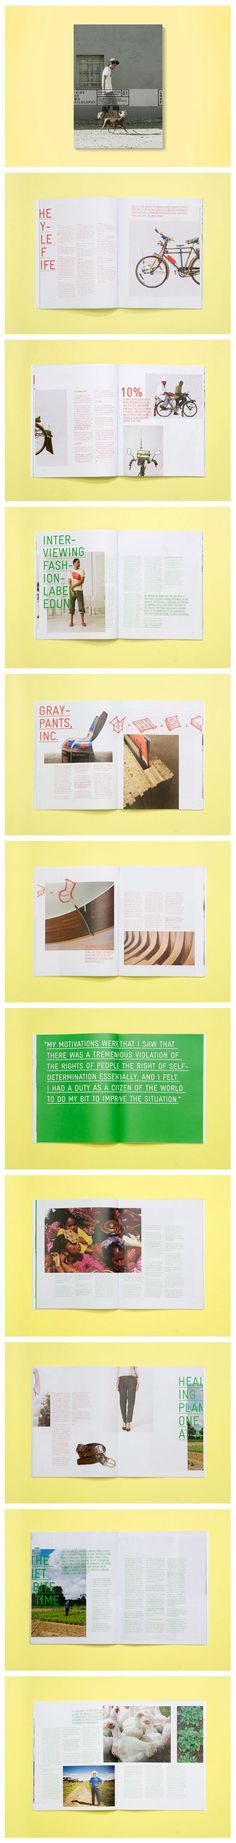 Loop Magazine Full image bleed off edge Coloured text over images Page-centered masthead